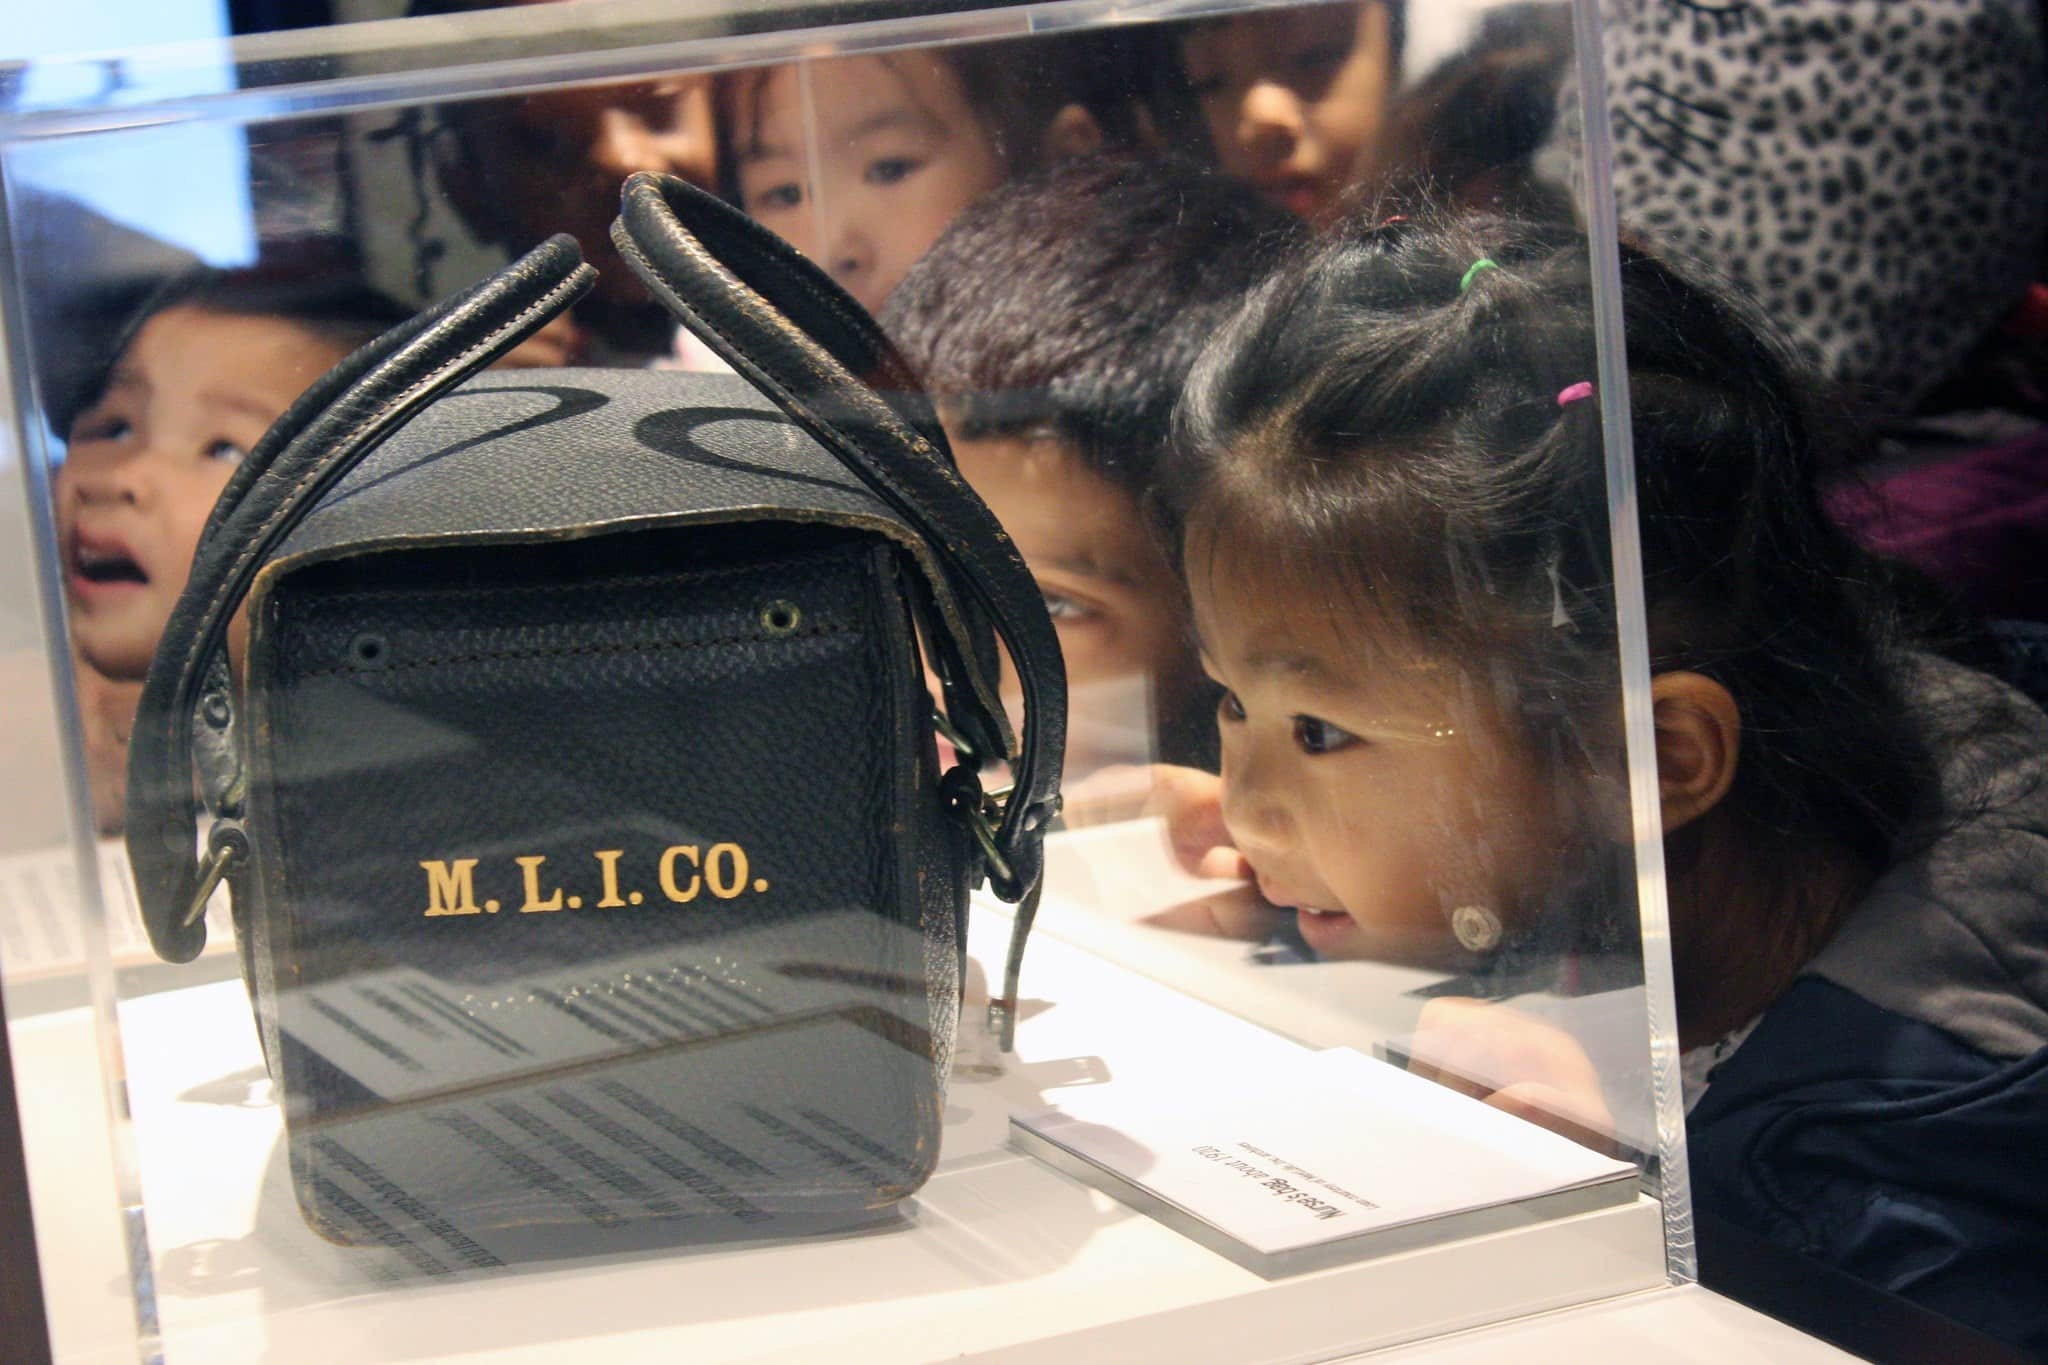 A little girl looks at a medical bag in a display case.